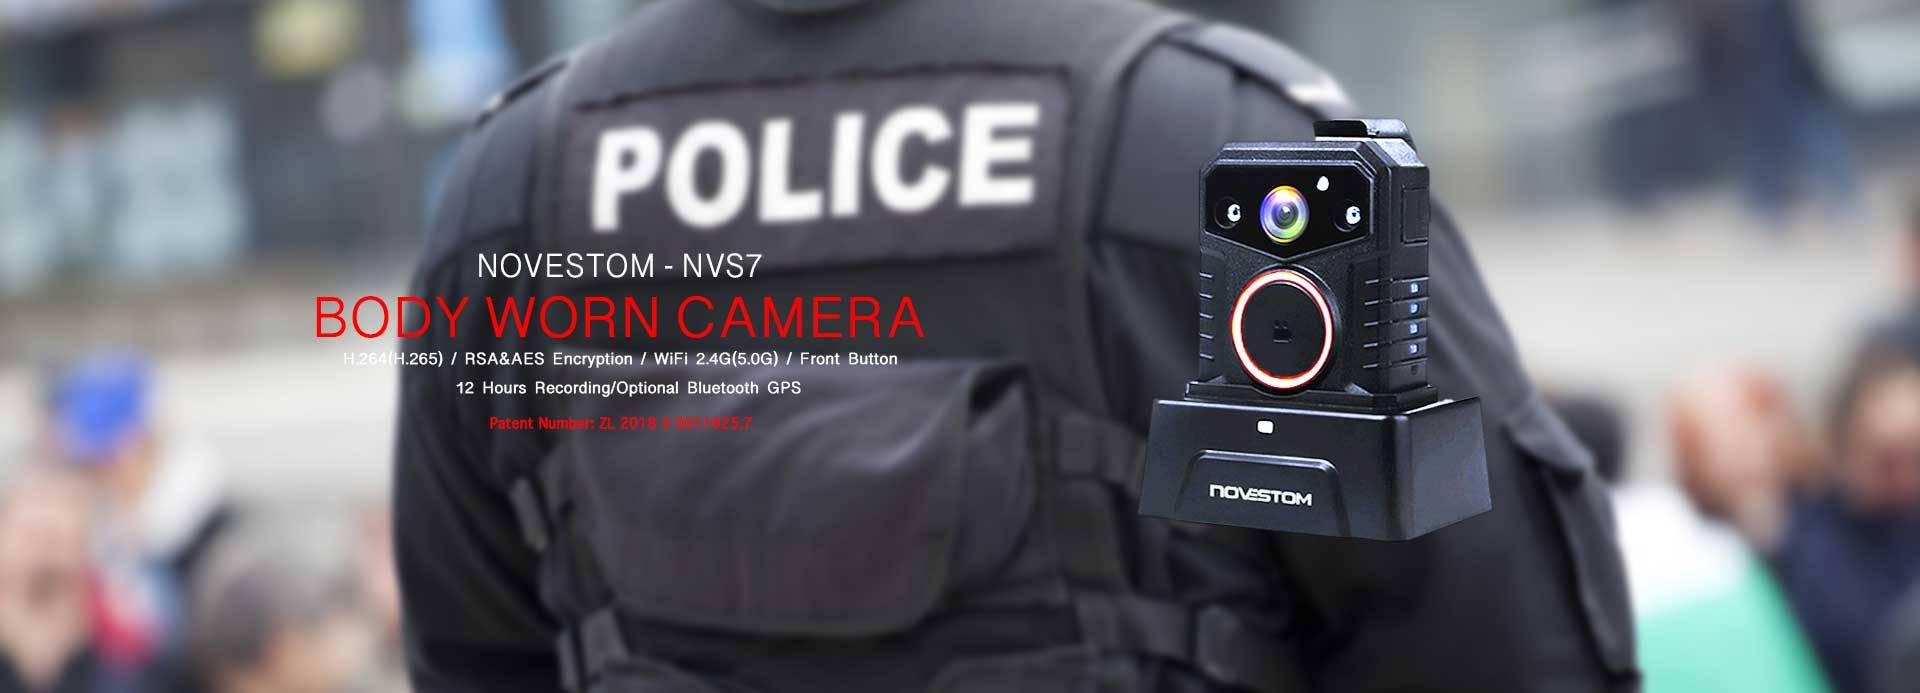 NVS7 wifi police style body worn video security cameras